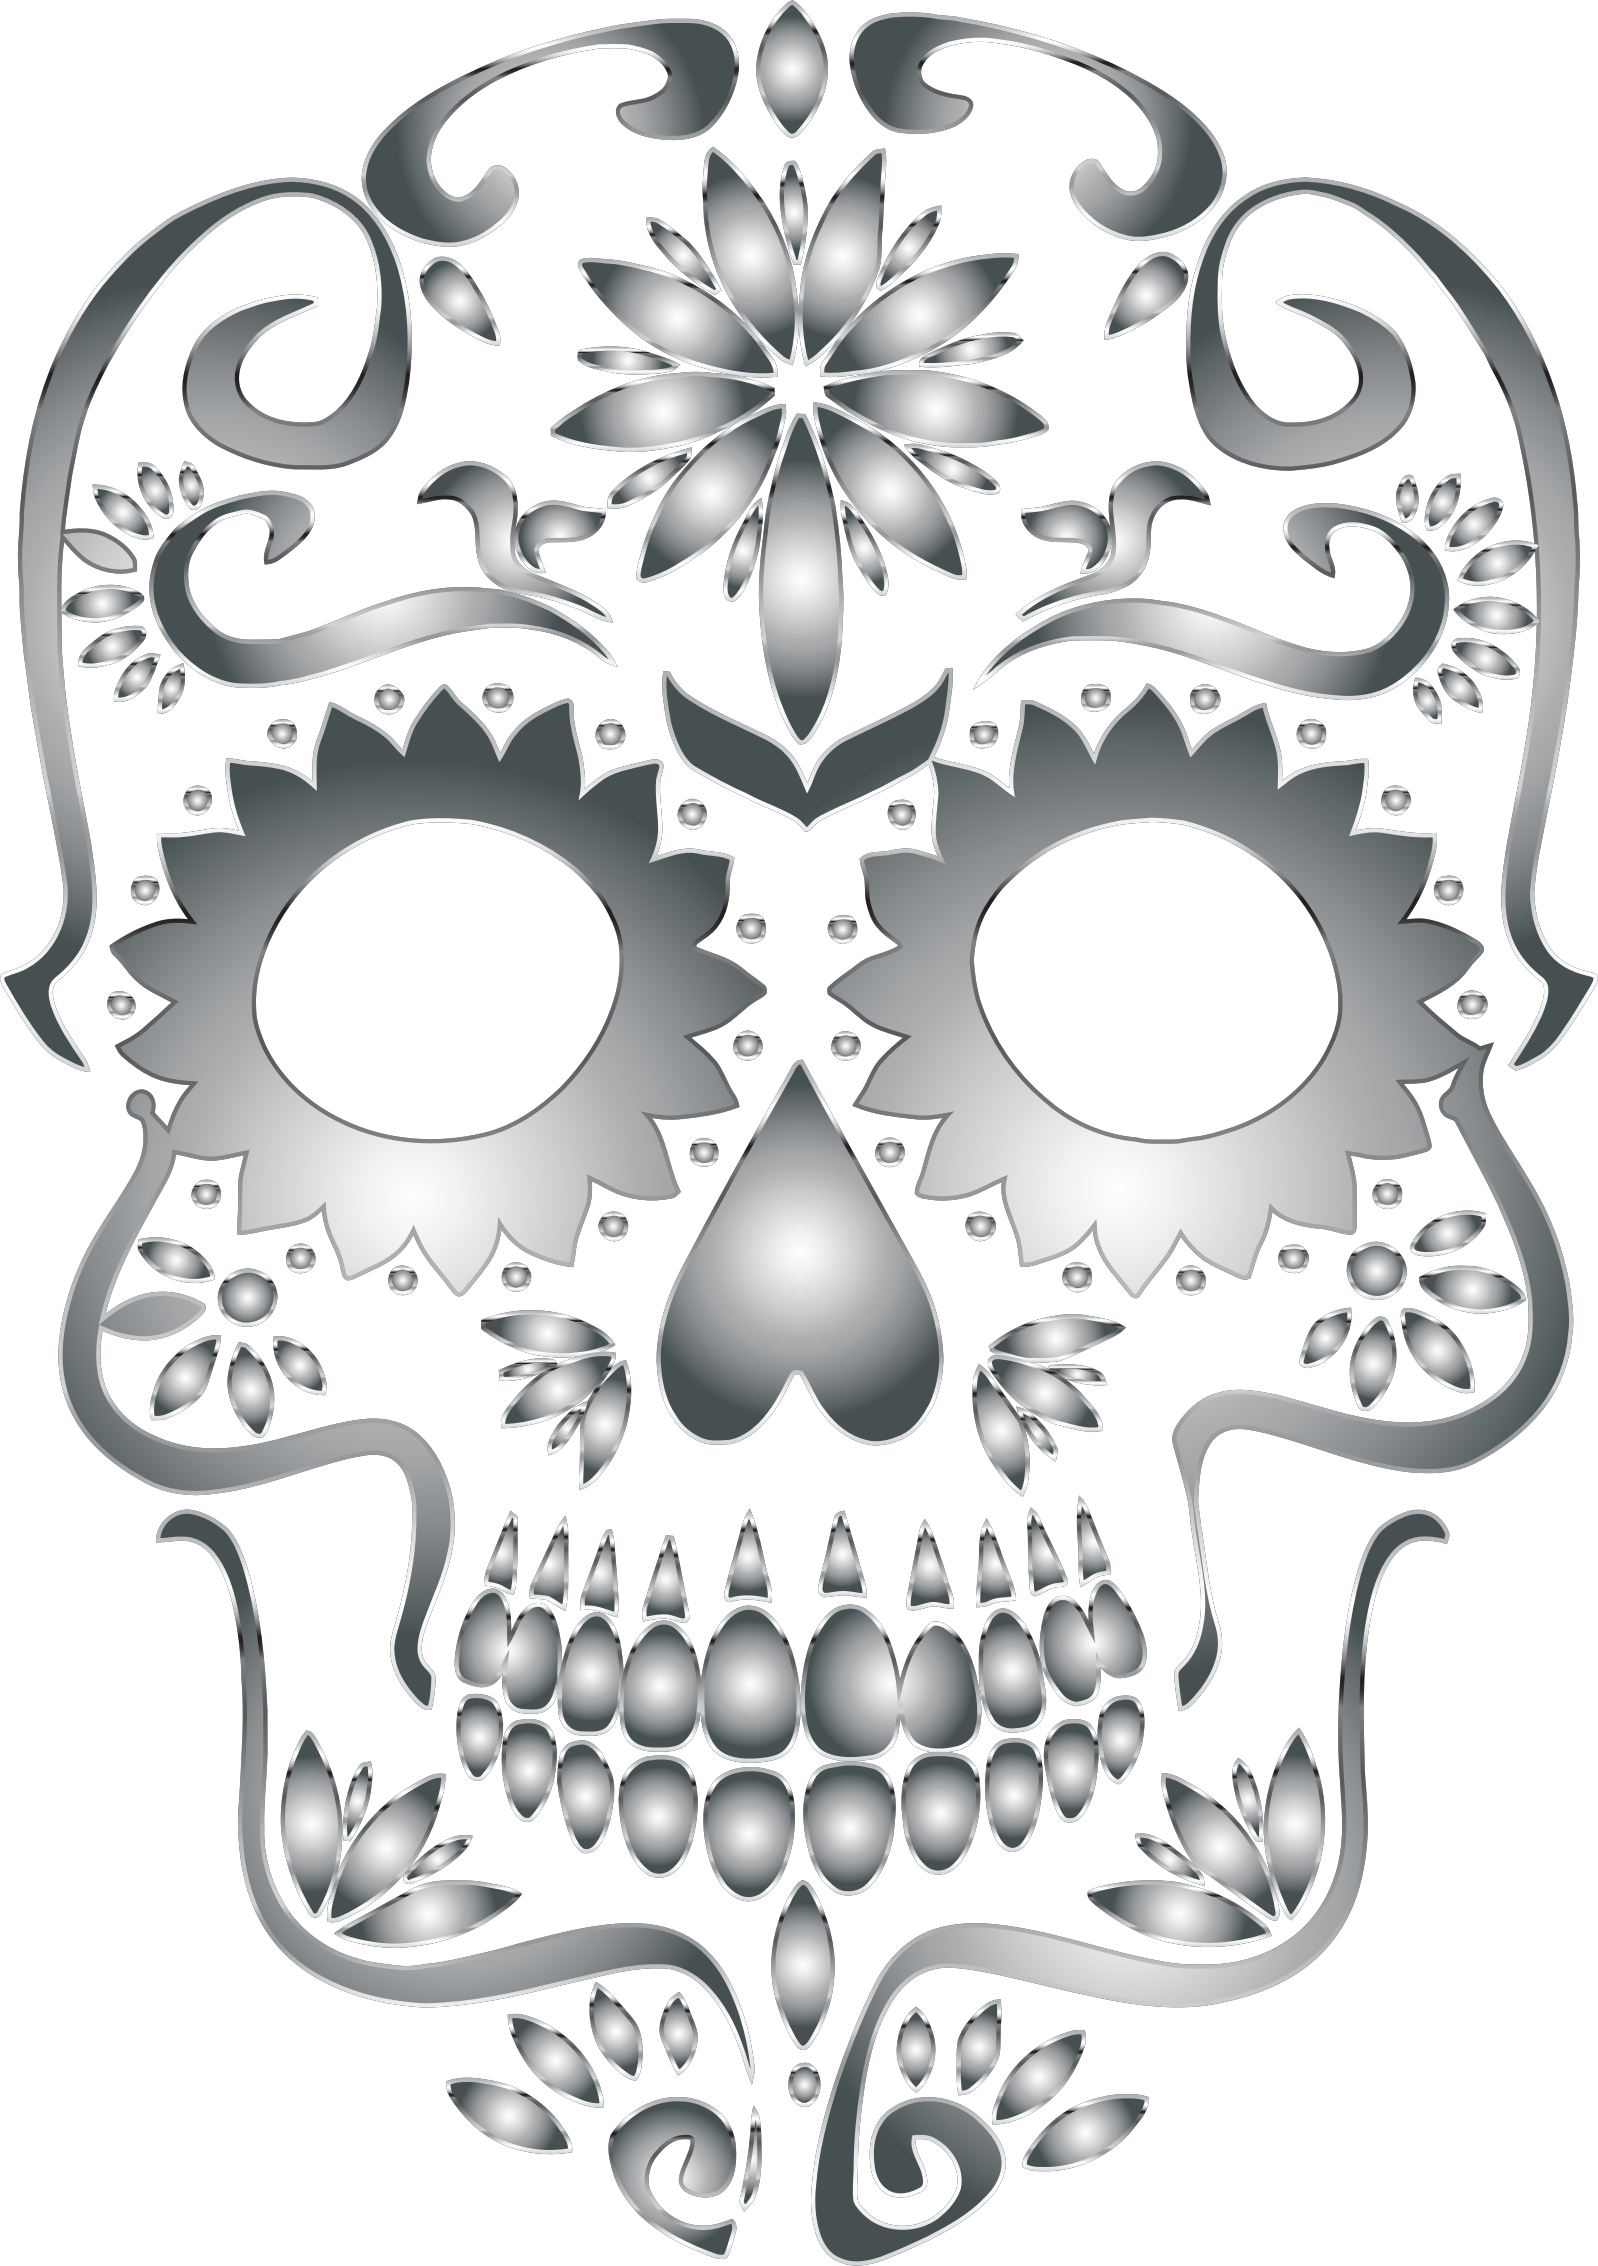 Stainless Steel Sugar Skull Silhouette No Background by GDJ